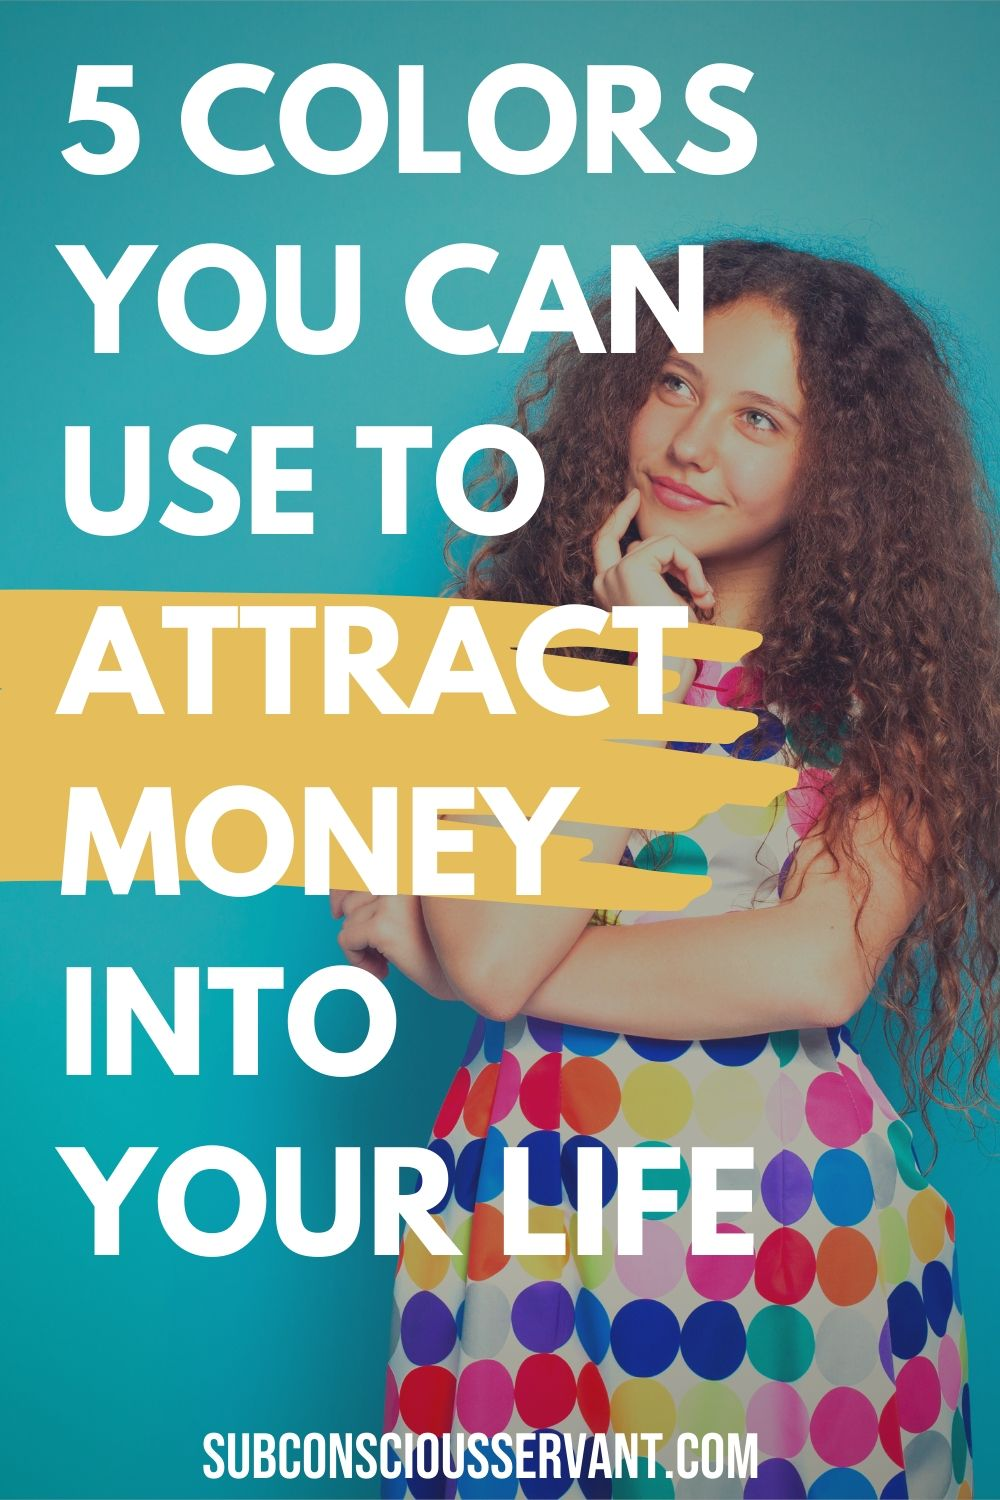 5 Colors That Attract Money Into Your Life Like A Magnet